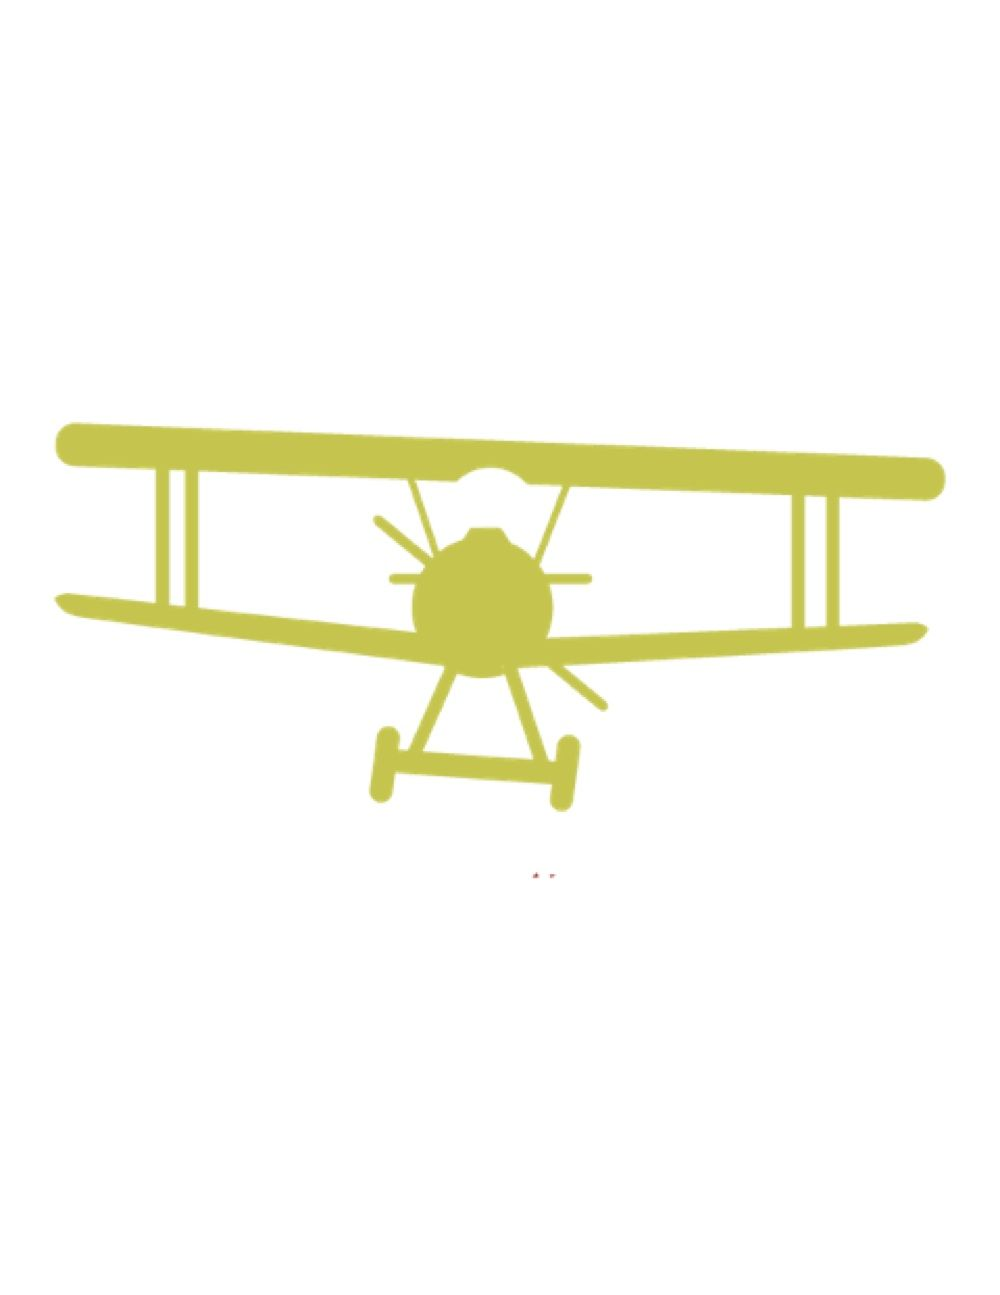 Free Air Themed Printables | Vintage airplanes, Airplanes and Free ...